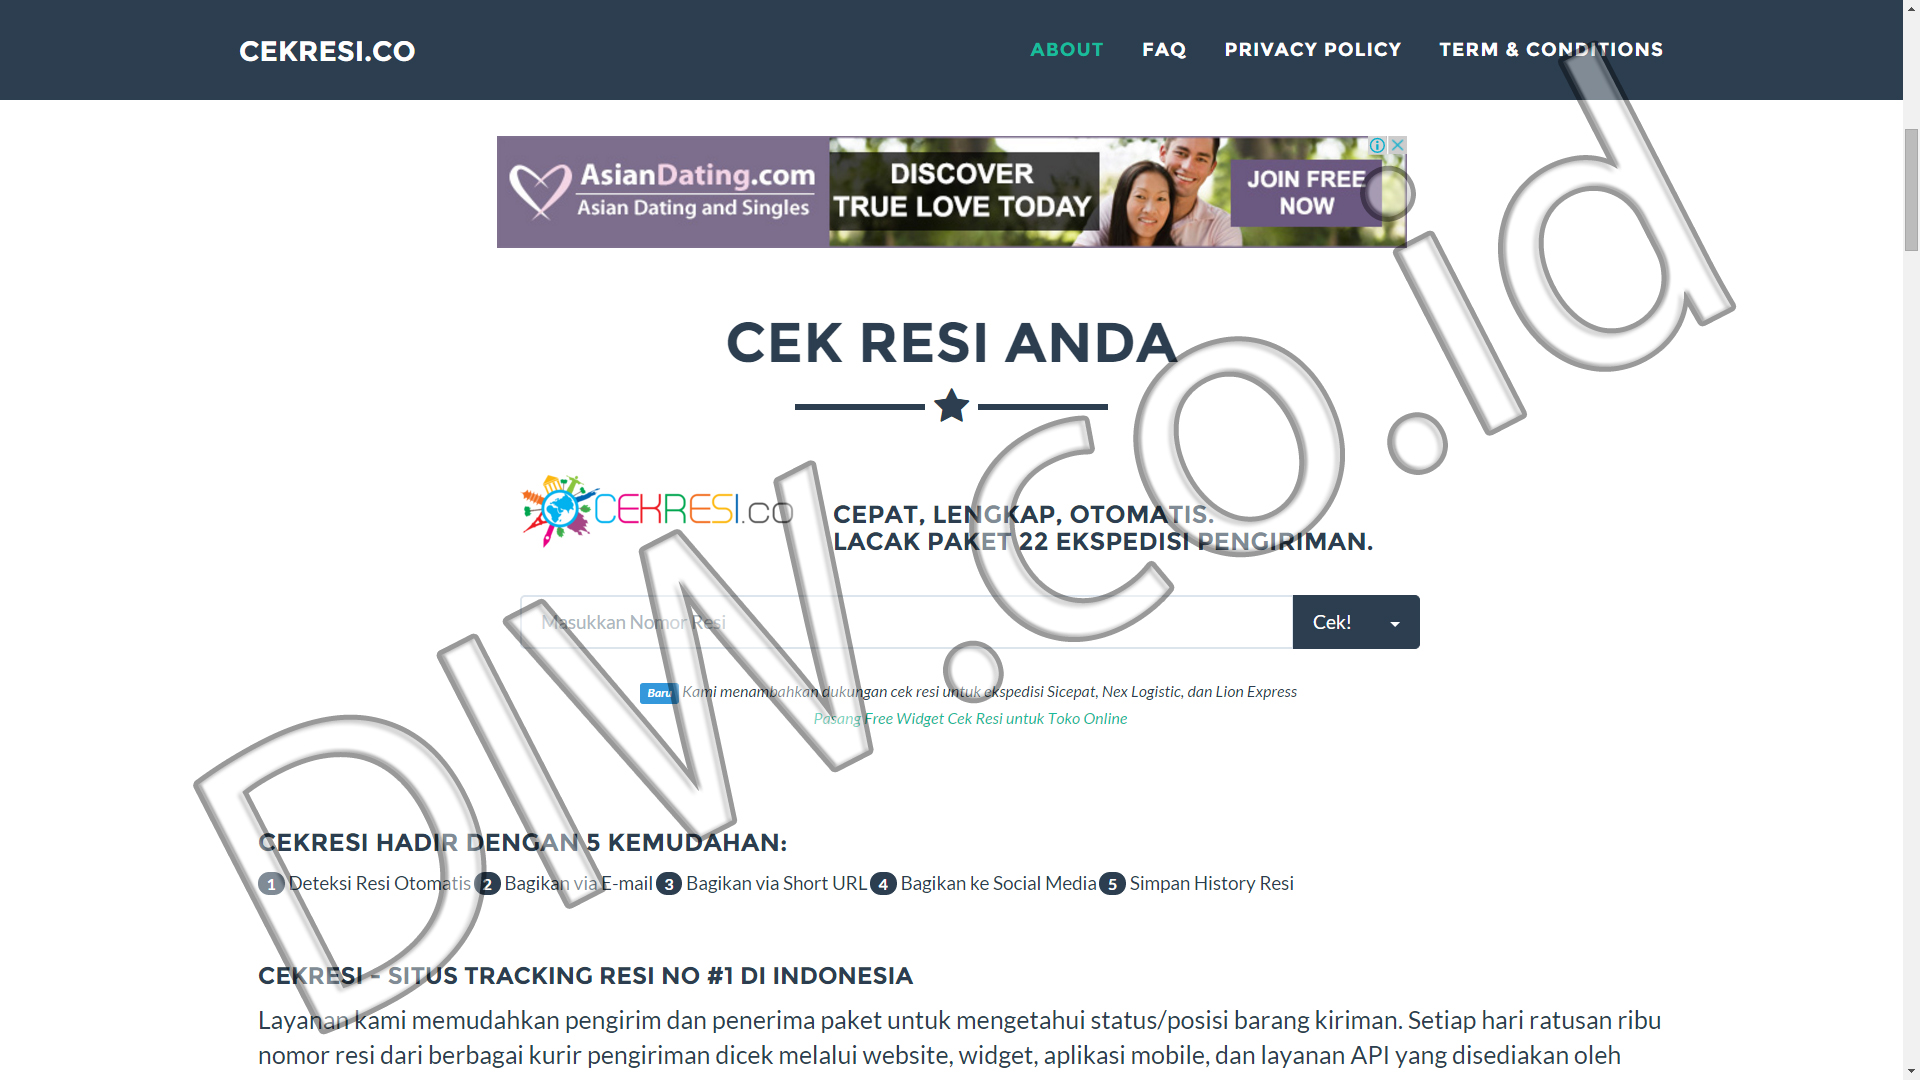 Portfolio 2 - Cekresi - Andri Sunardi - Freelancer - Web Developer - CEO DIW.co.id